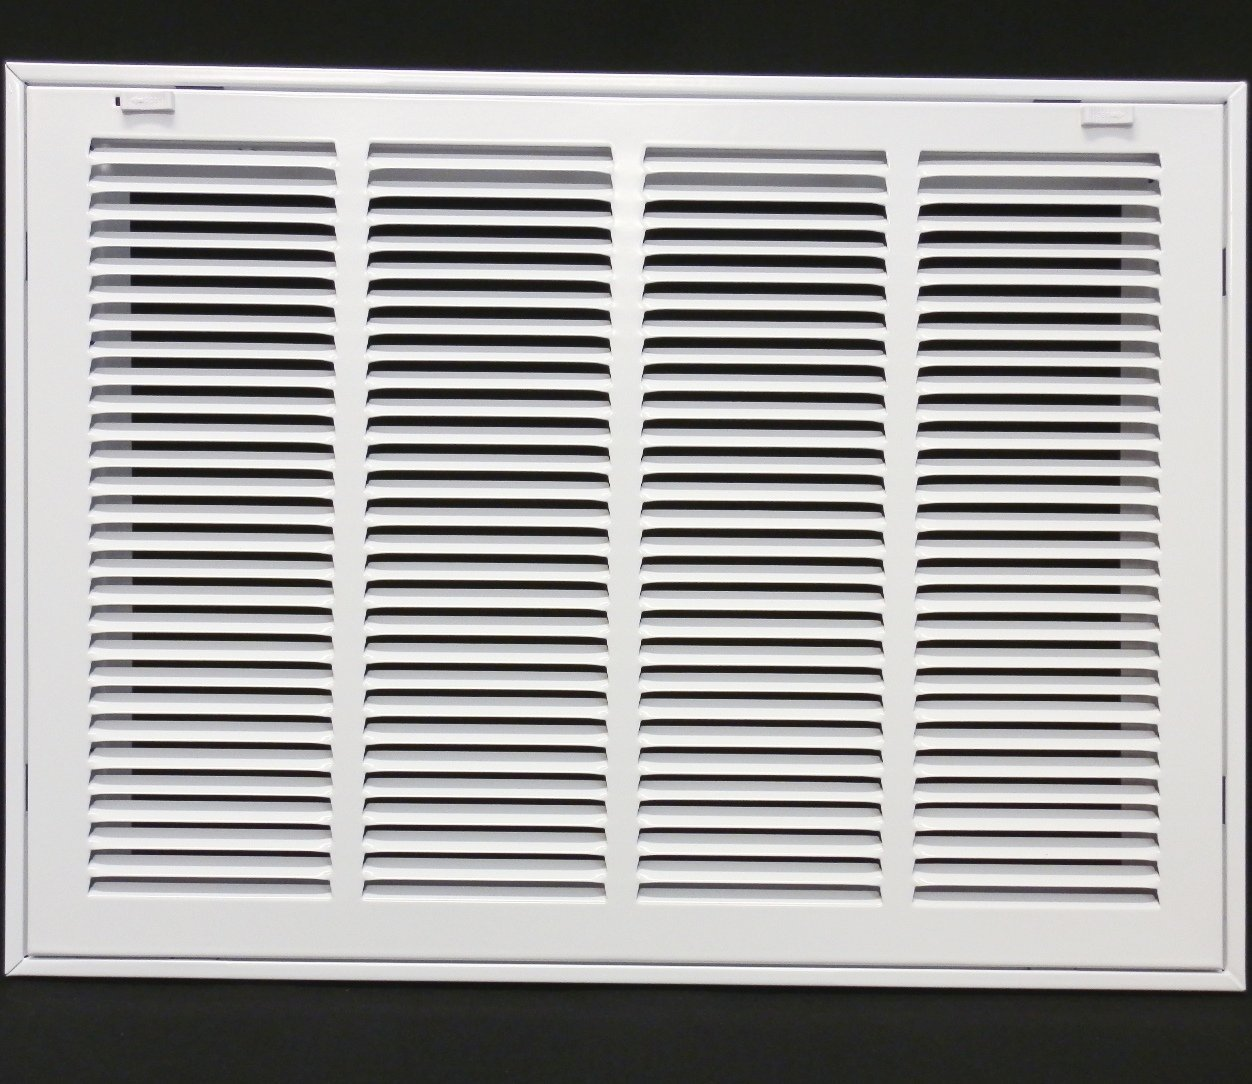 20'' X 14 Steel Return Air Filter Grille for 1'' Filter - Removable Face/Door - HVAC DUCT COVER - Flat Stamped Face - White [Outer Dimensions: 22.5''w X 16.5''h]